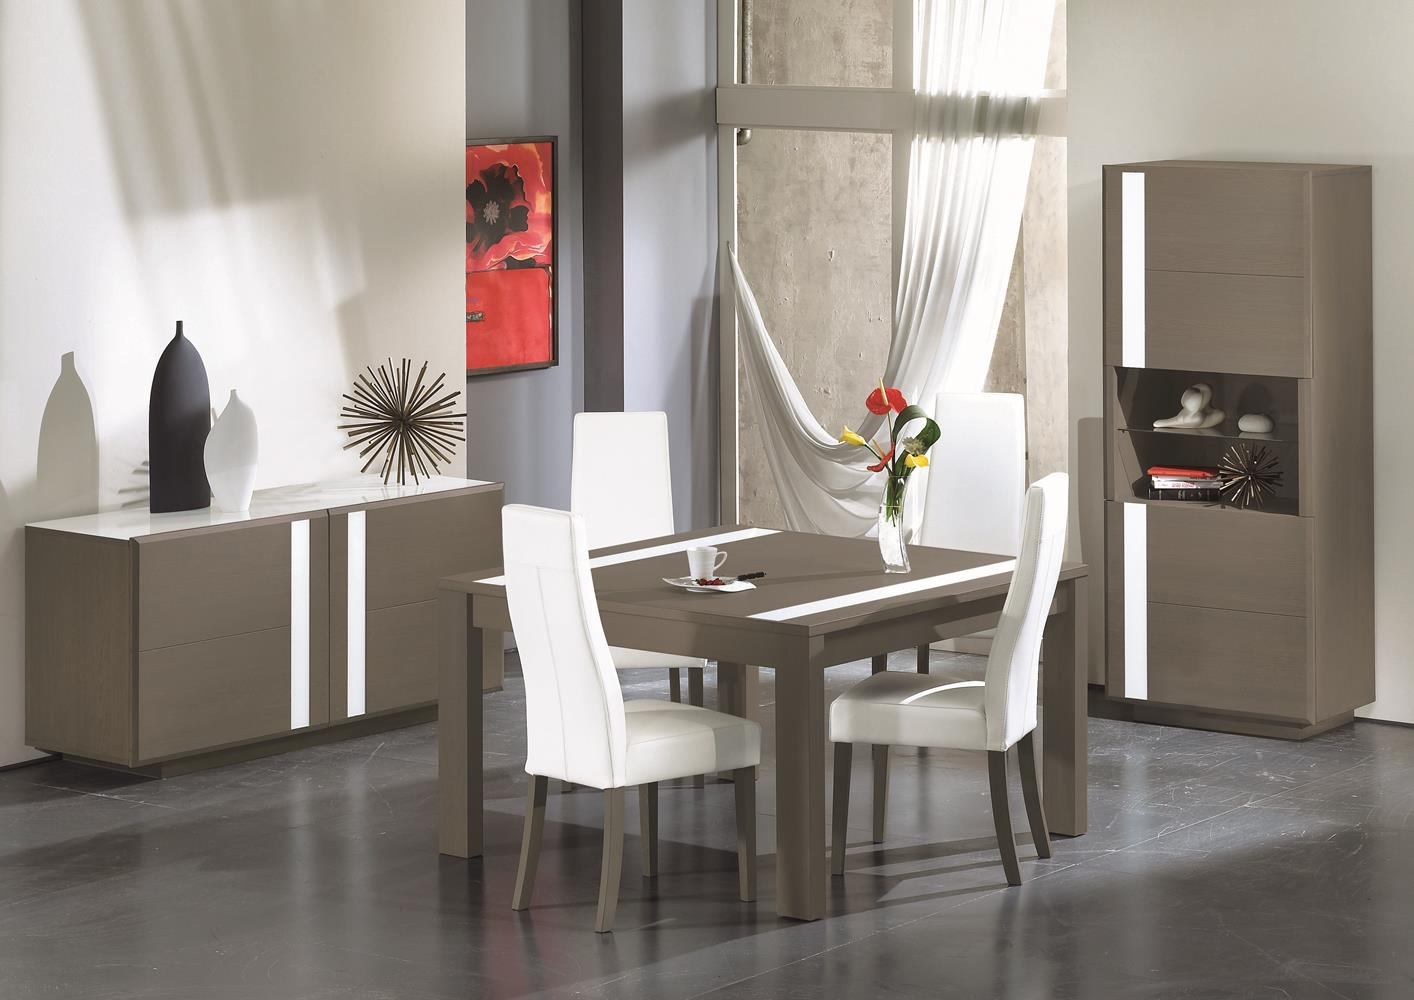 Table contemporaine carree avec allonge - Table carree avec rallonge design ...